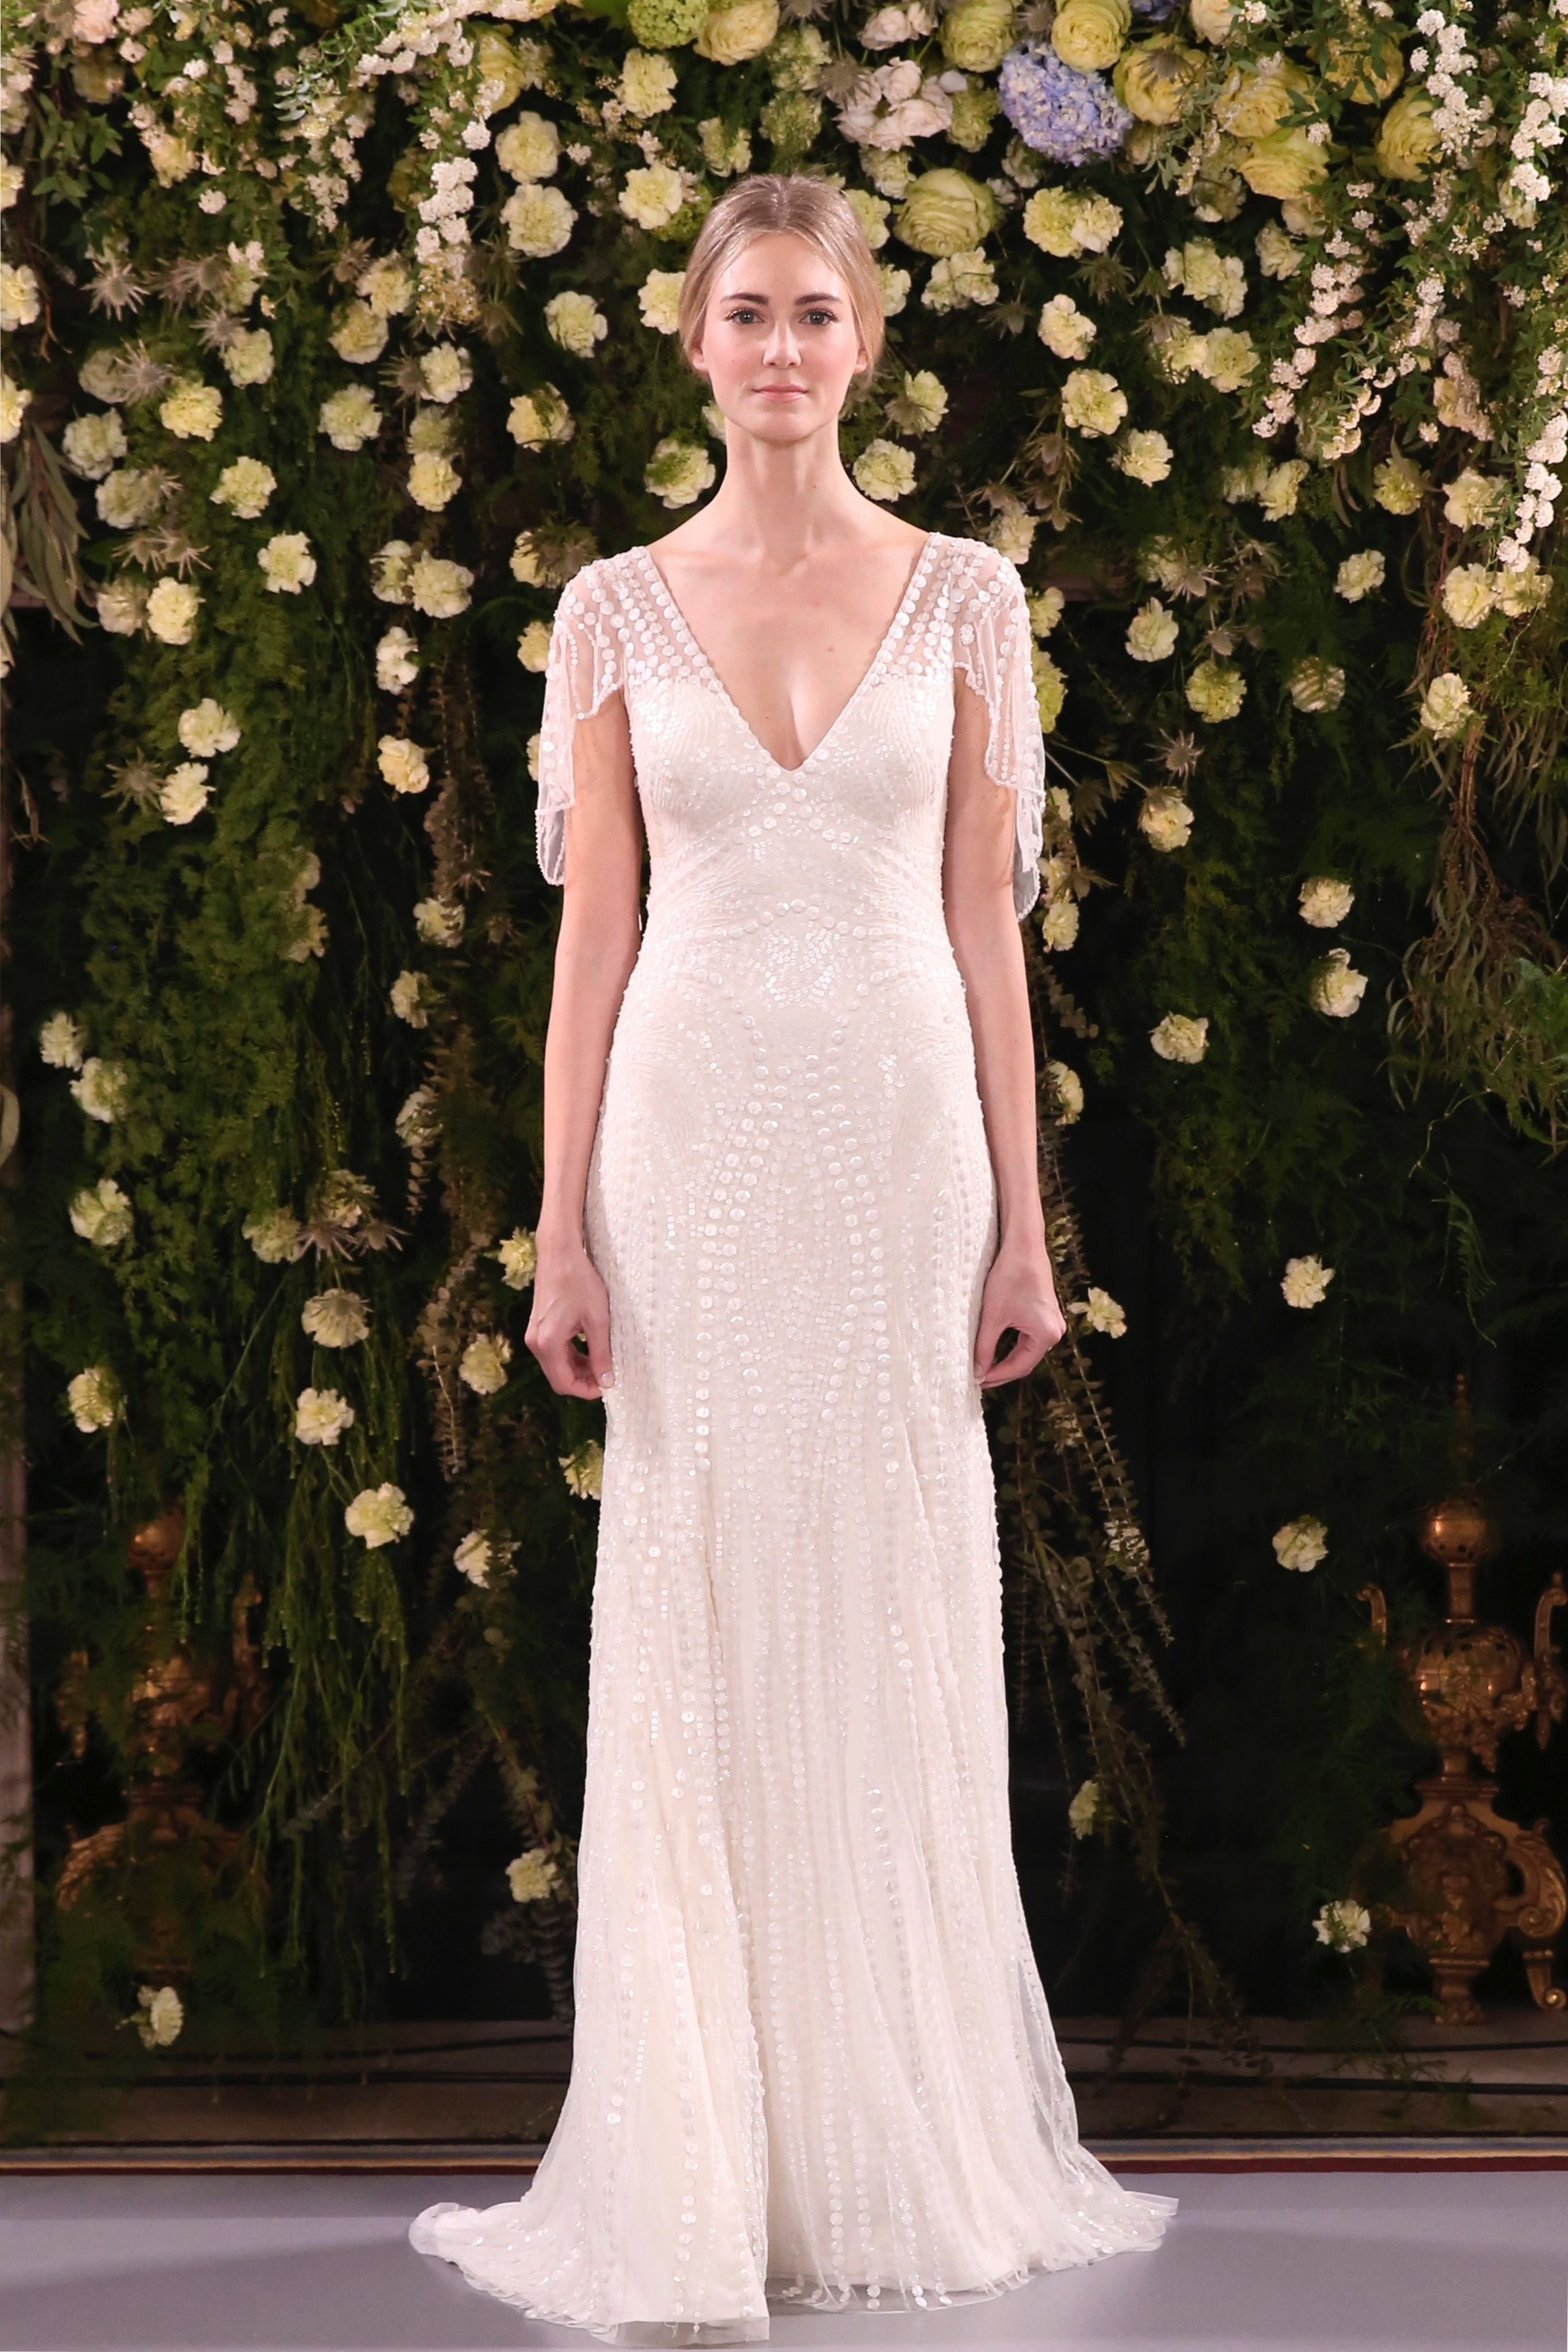 Jenny Pakcham S 2019 Collection Find Out Which Gown Is Her Personal Favorite And What Best Advice To Bride Who Are Looking For Their Wedding